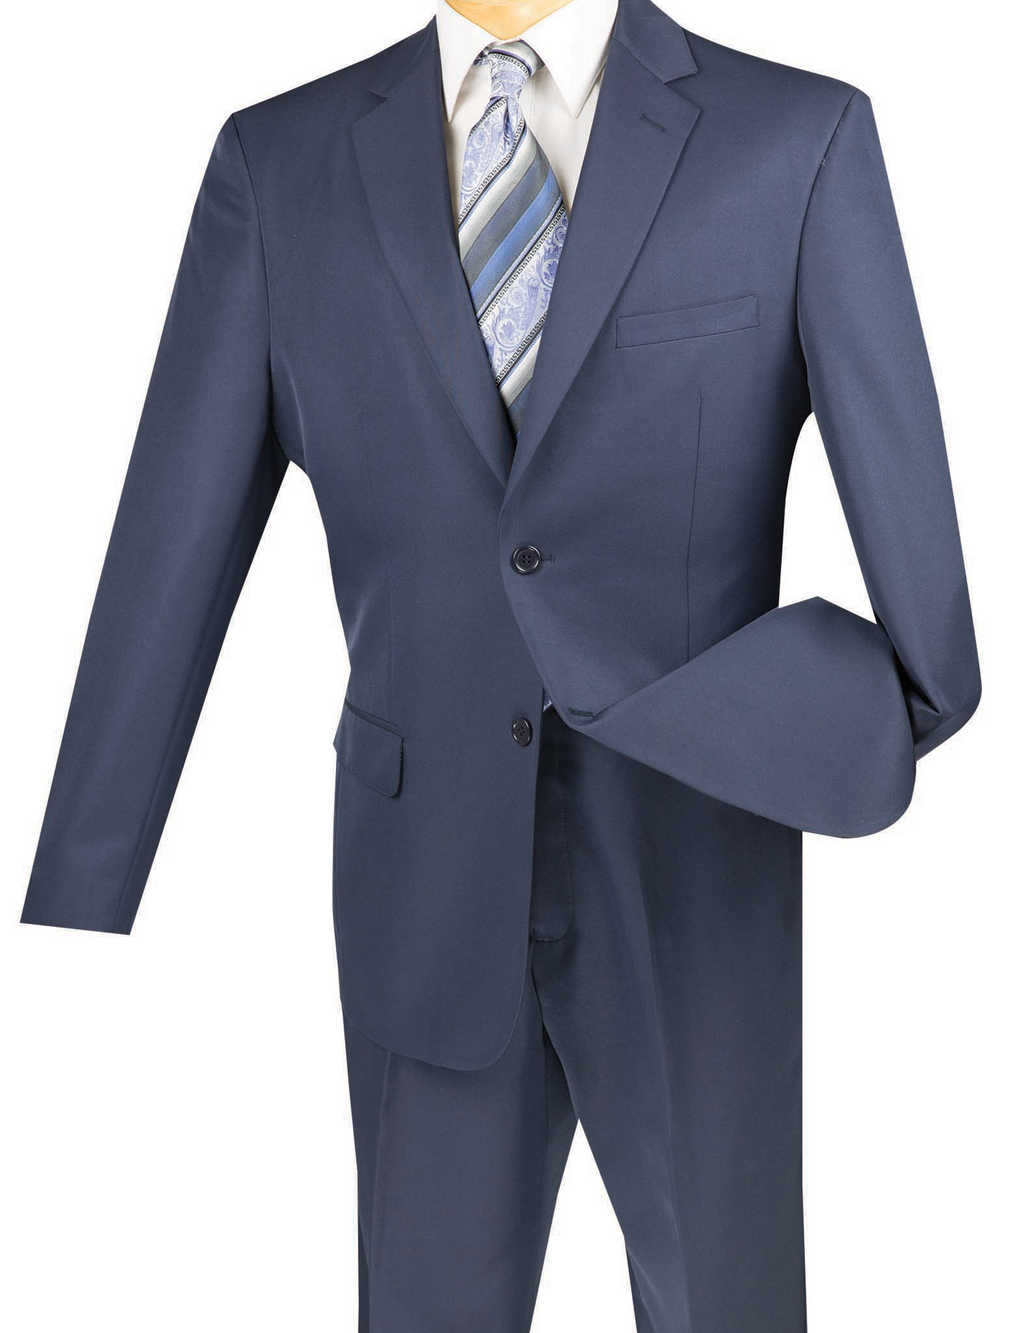 Navy Men's Regular Fit Suit 2 Piece Two Button Design - SUITS OUTLETS